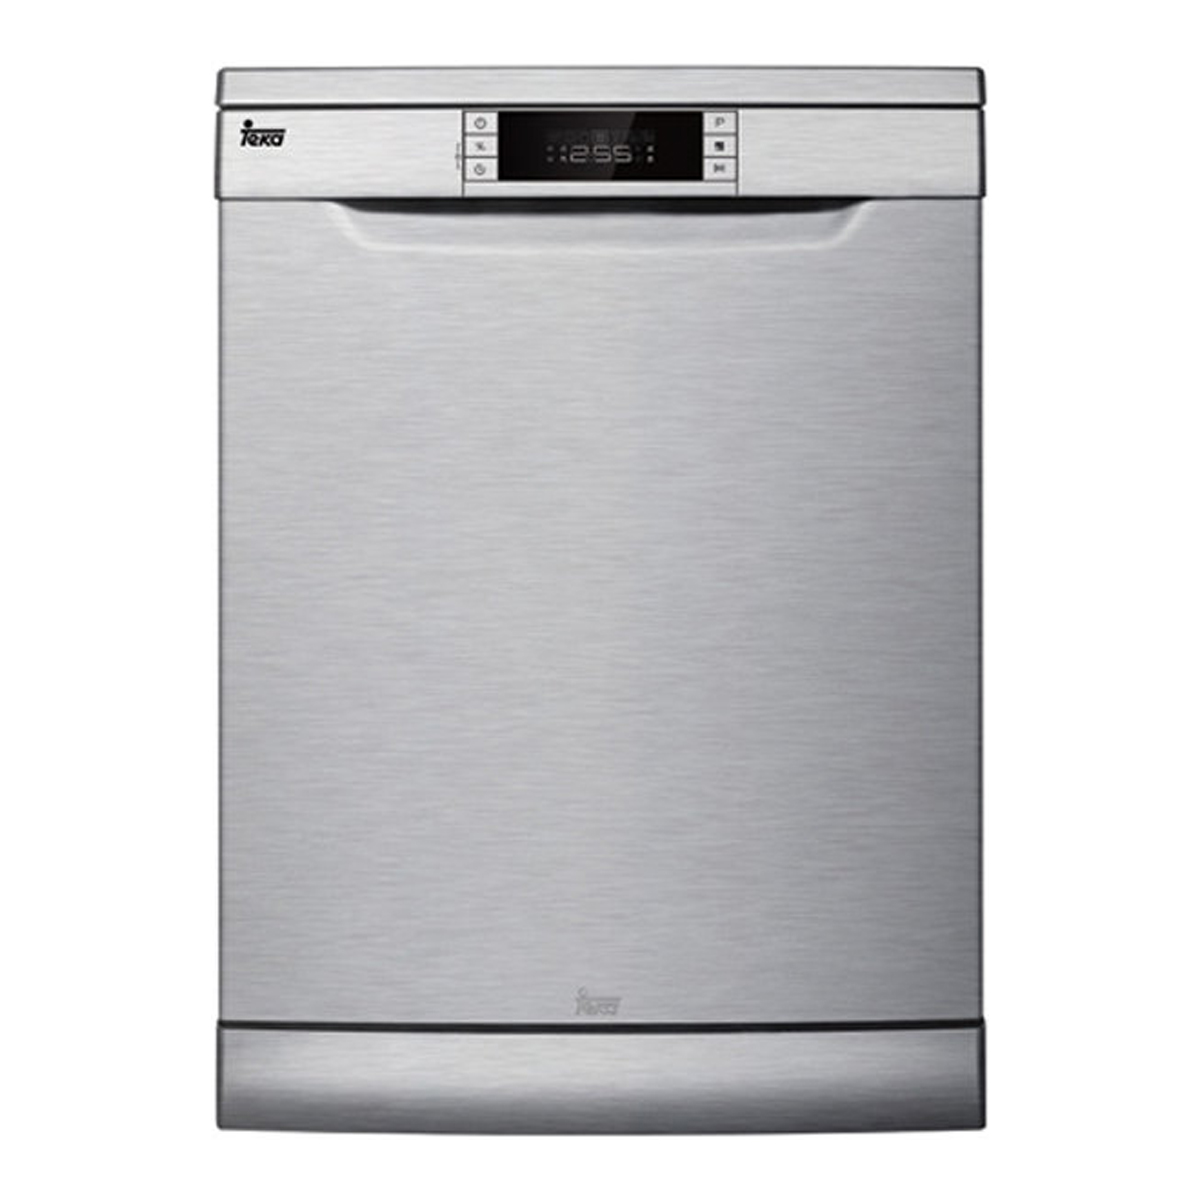 Teka LP8835X Freestanding Dishwasher